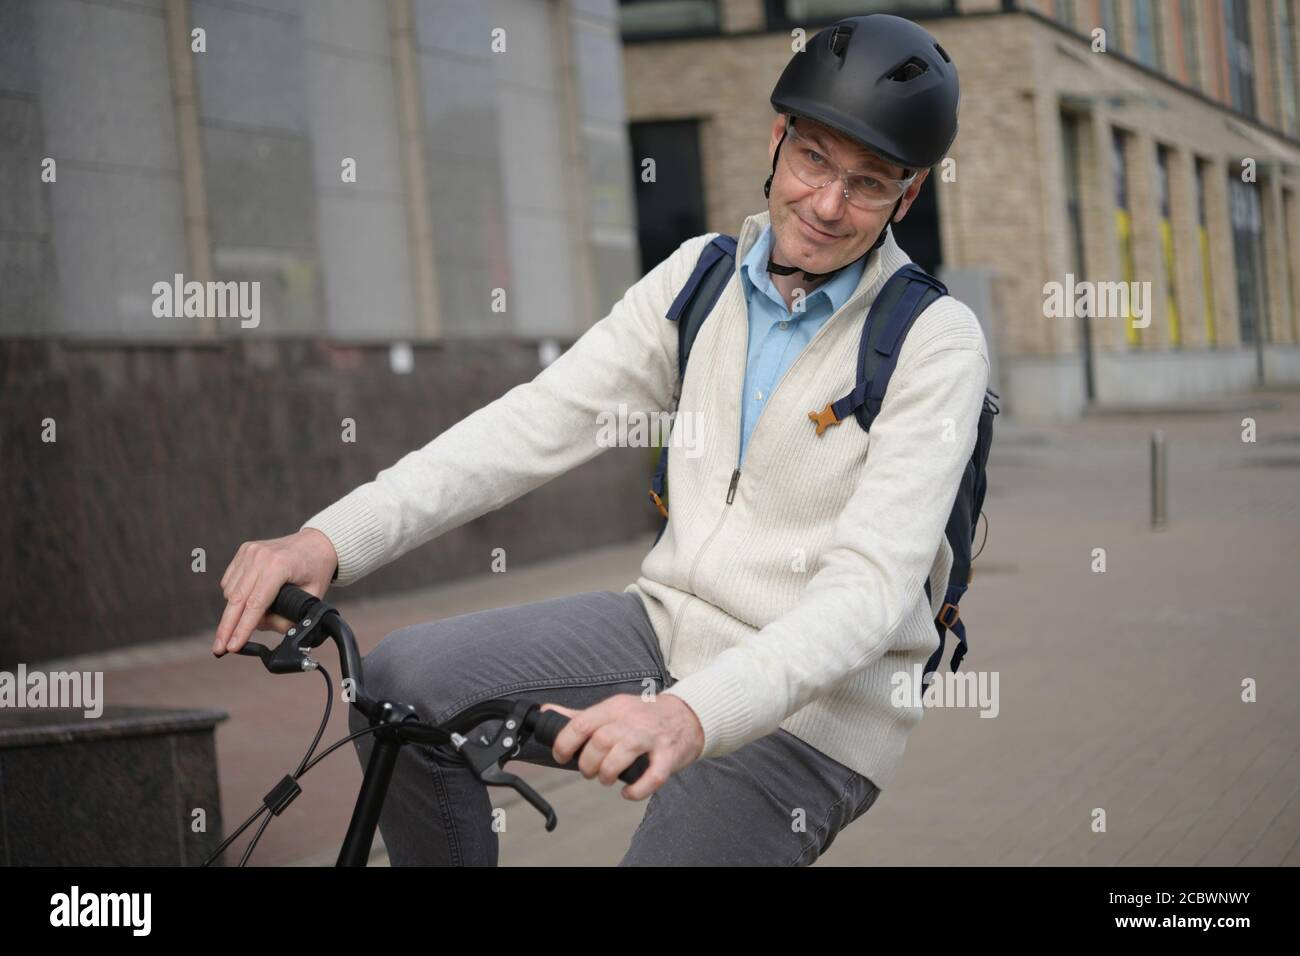 Mature Caucasian Man In A Bicycle Helmet Riding On His Bike In A City Stock Photo Alamy